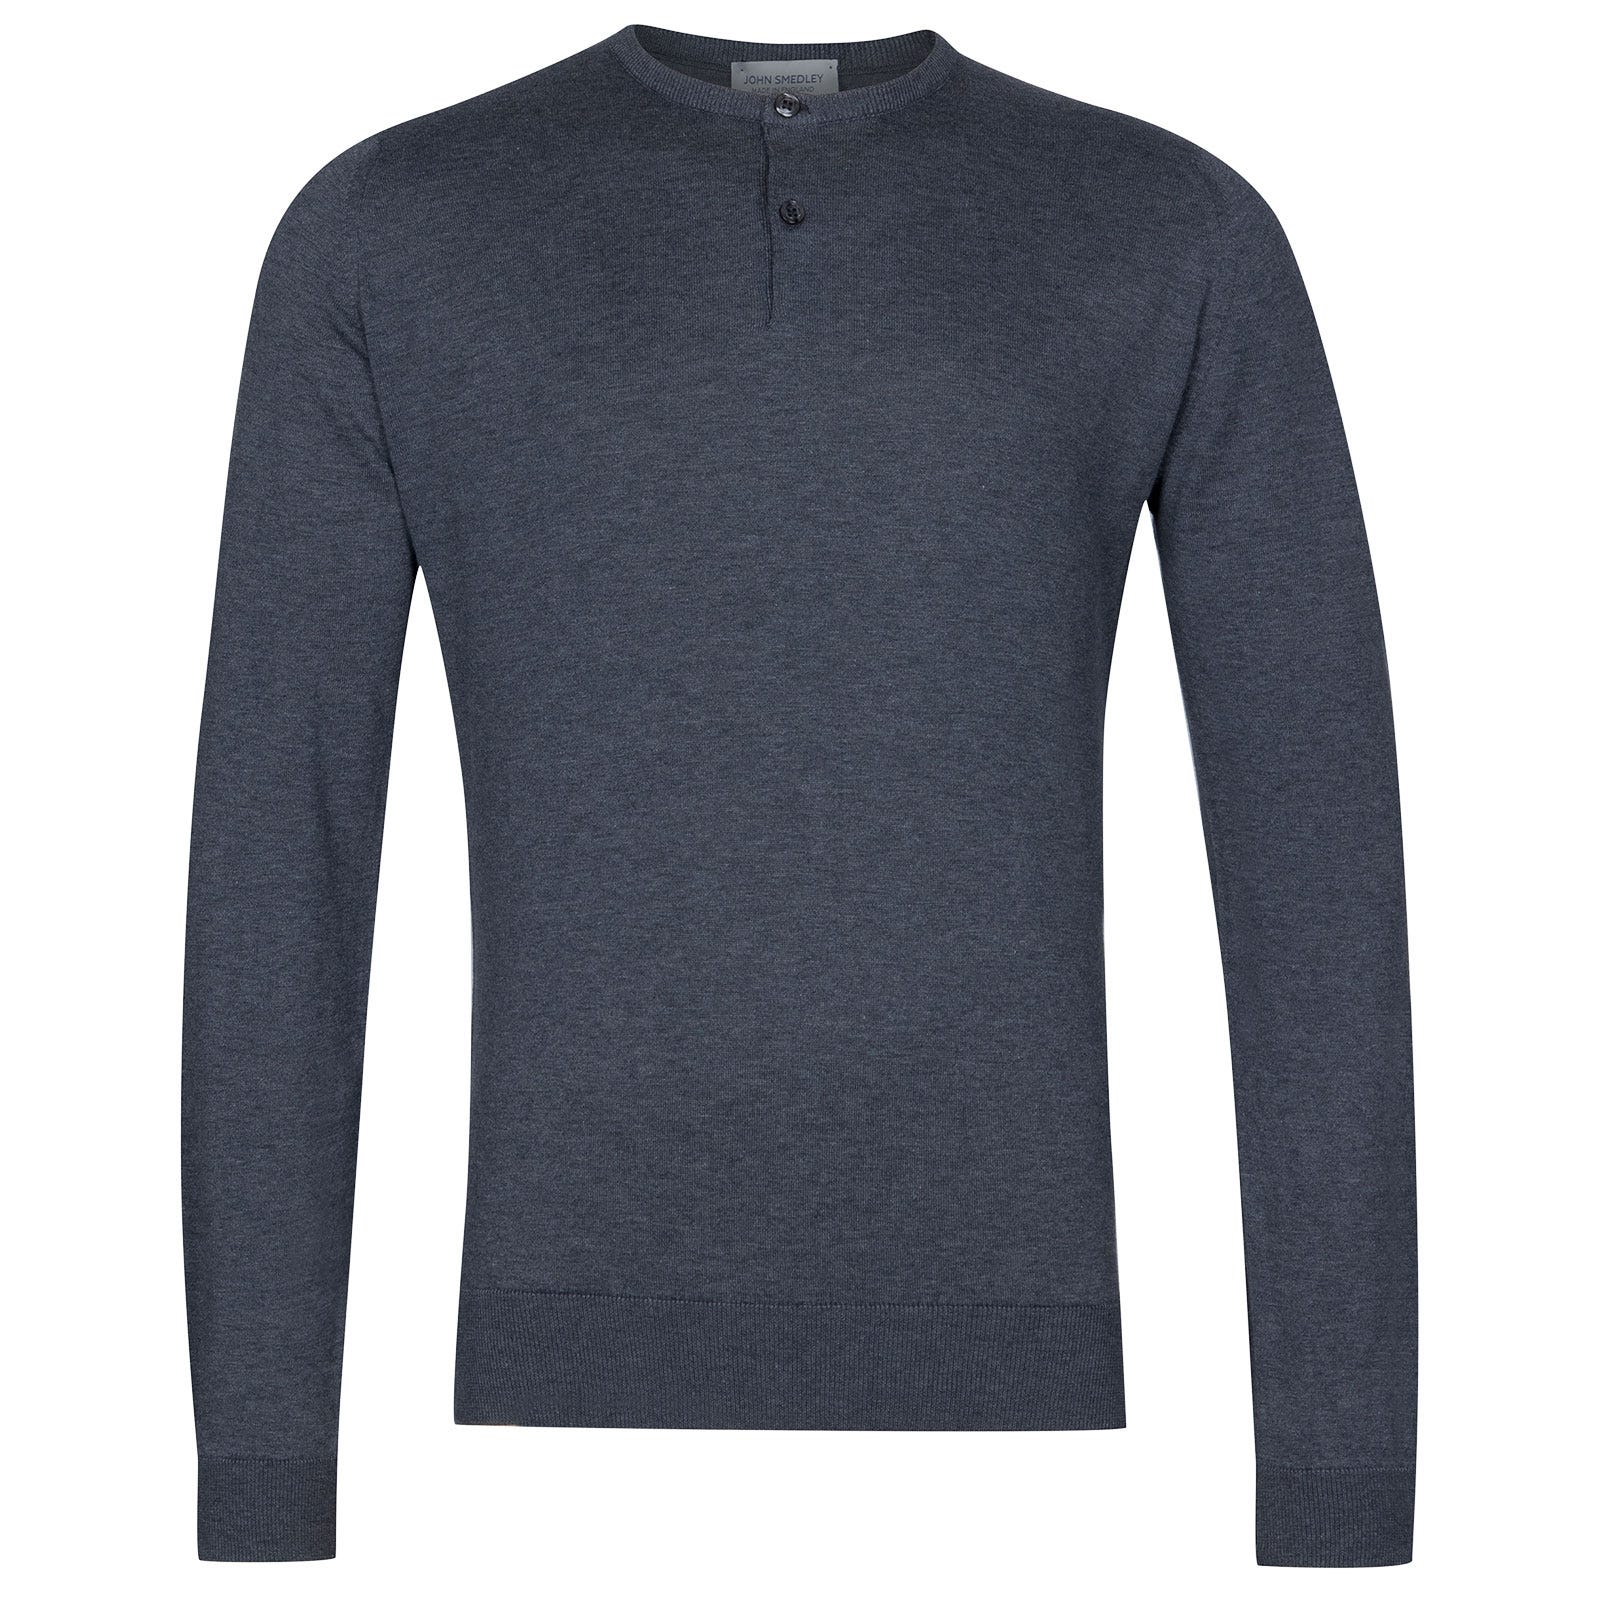 John Smedley Wembury Sea Island Cotton Pullover in Charcoal-M